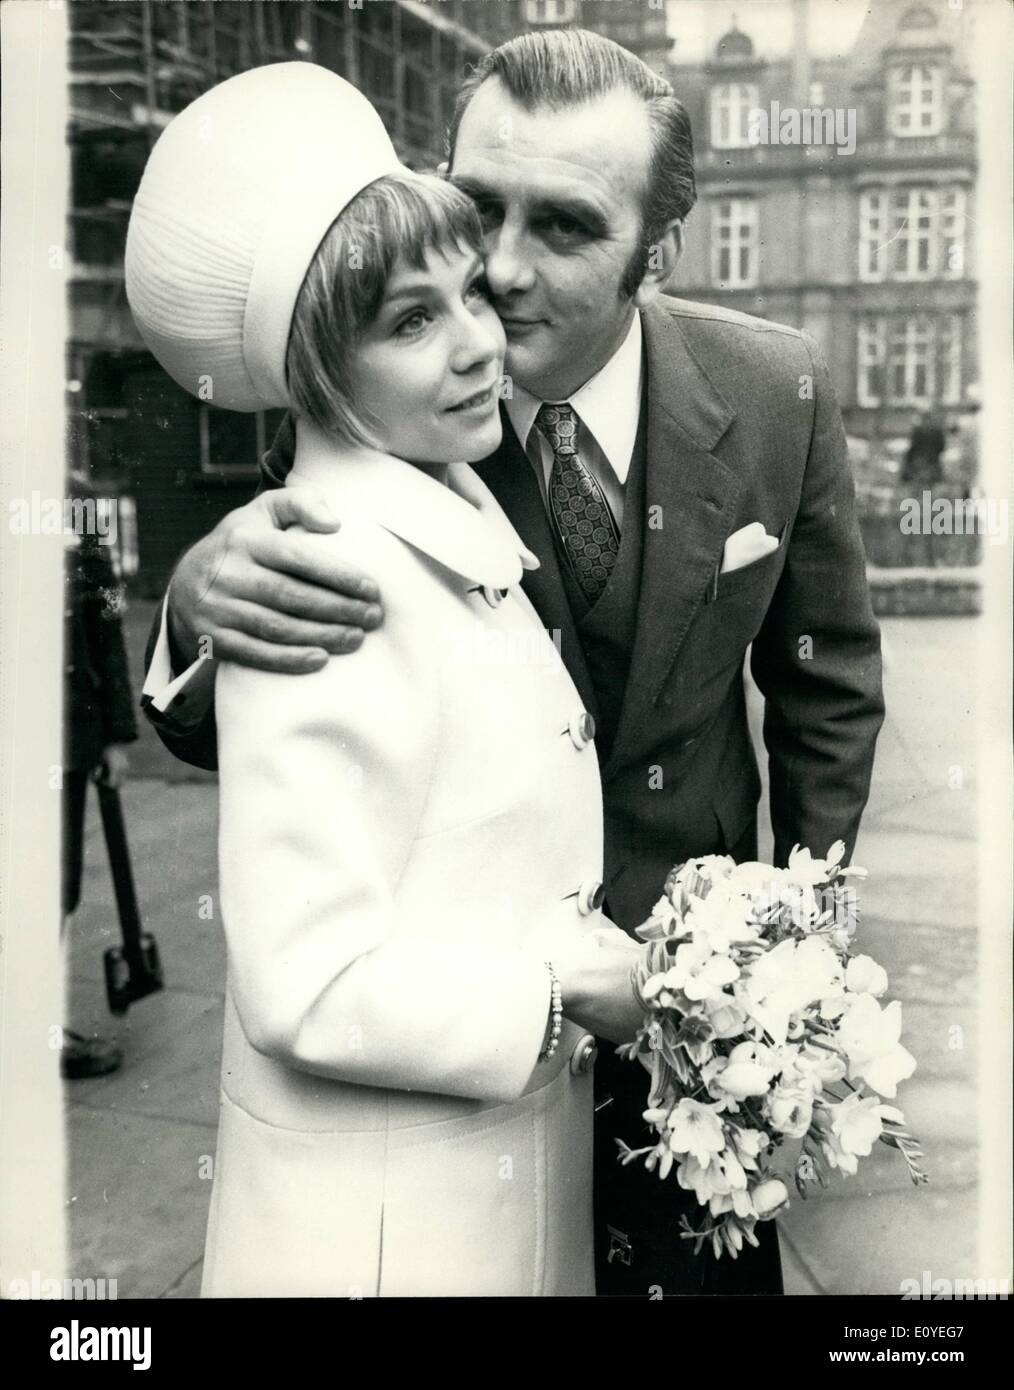 Jan. 01, 1970 - Actress Weds: The Wedding took place today at Caxton Hall between David Conville, 40, director of 'Toad of Toad - Stock Image